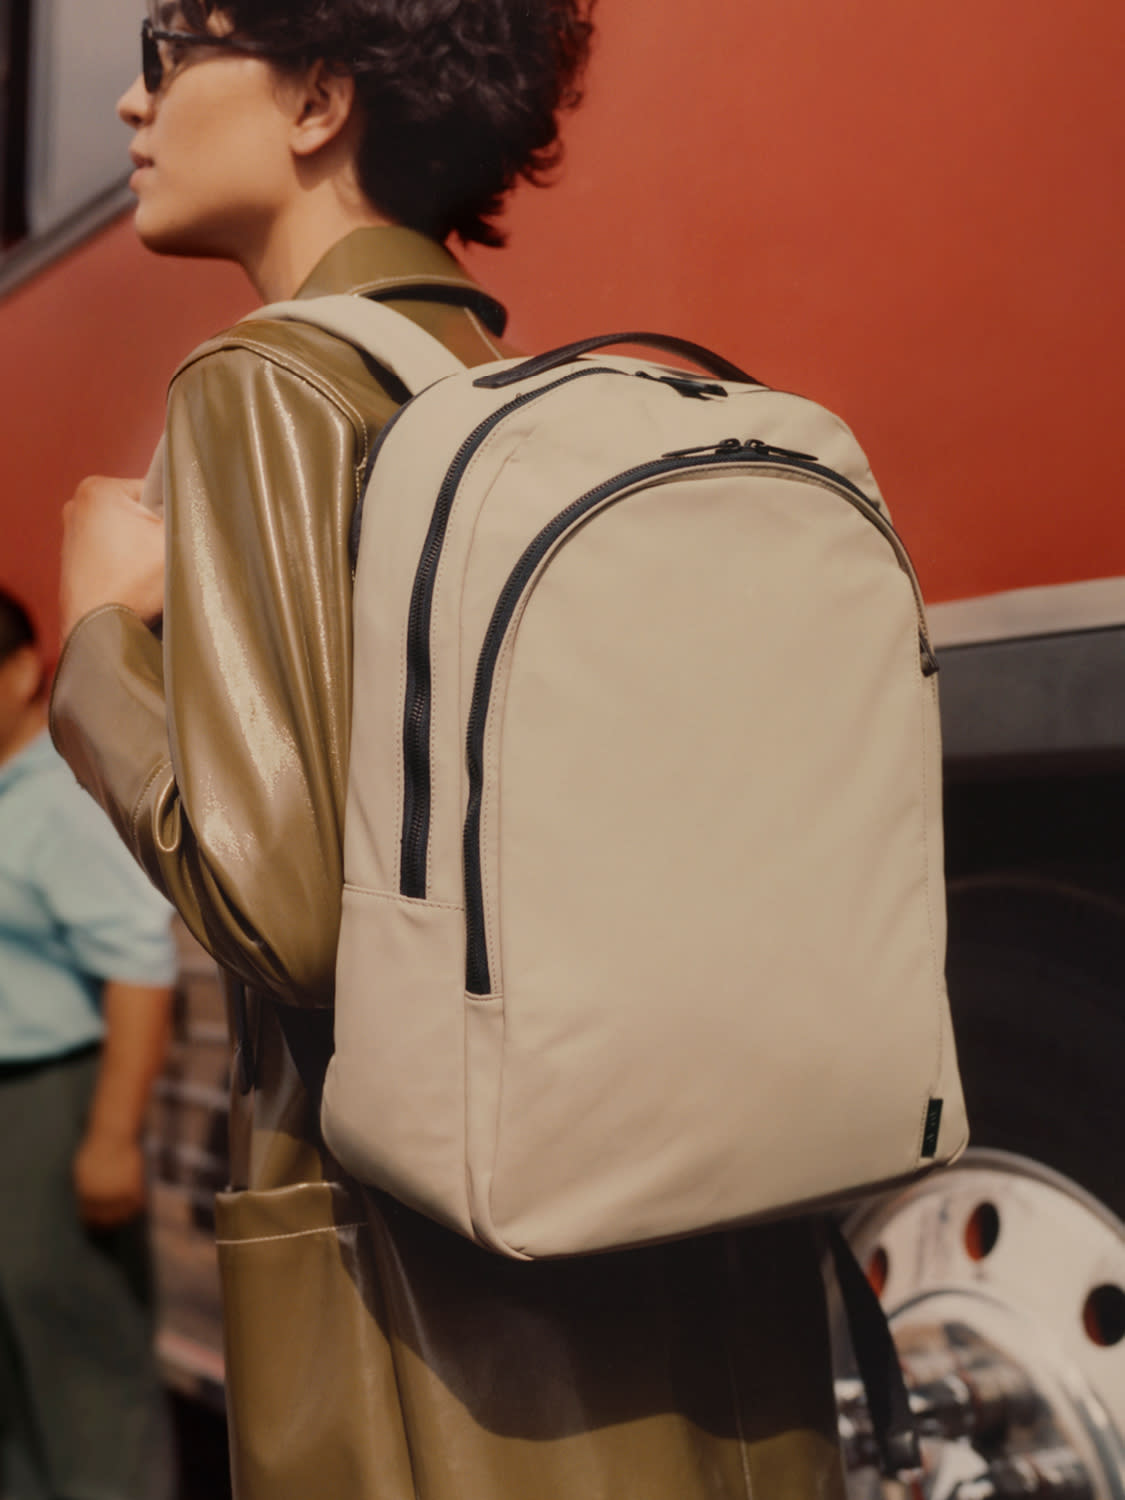 A woman with a sand color backpack on her shoulder.